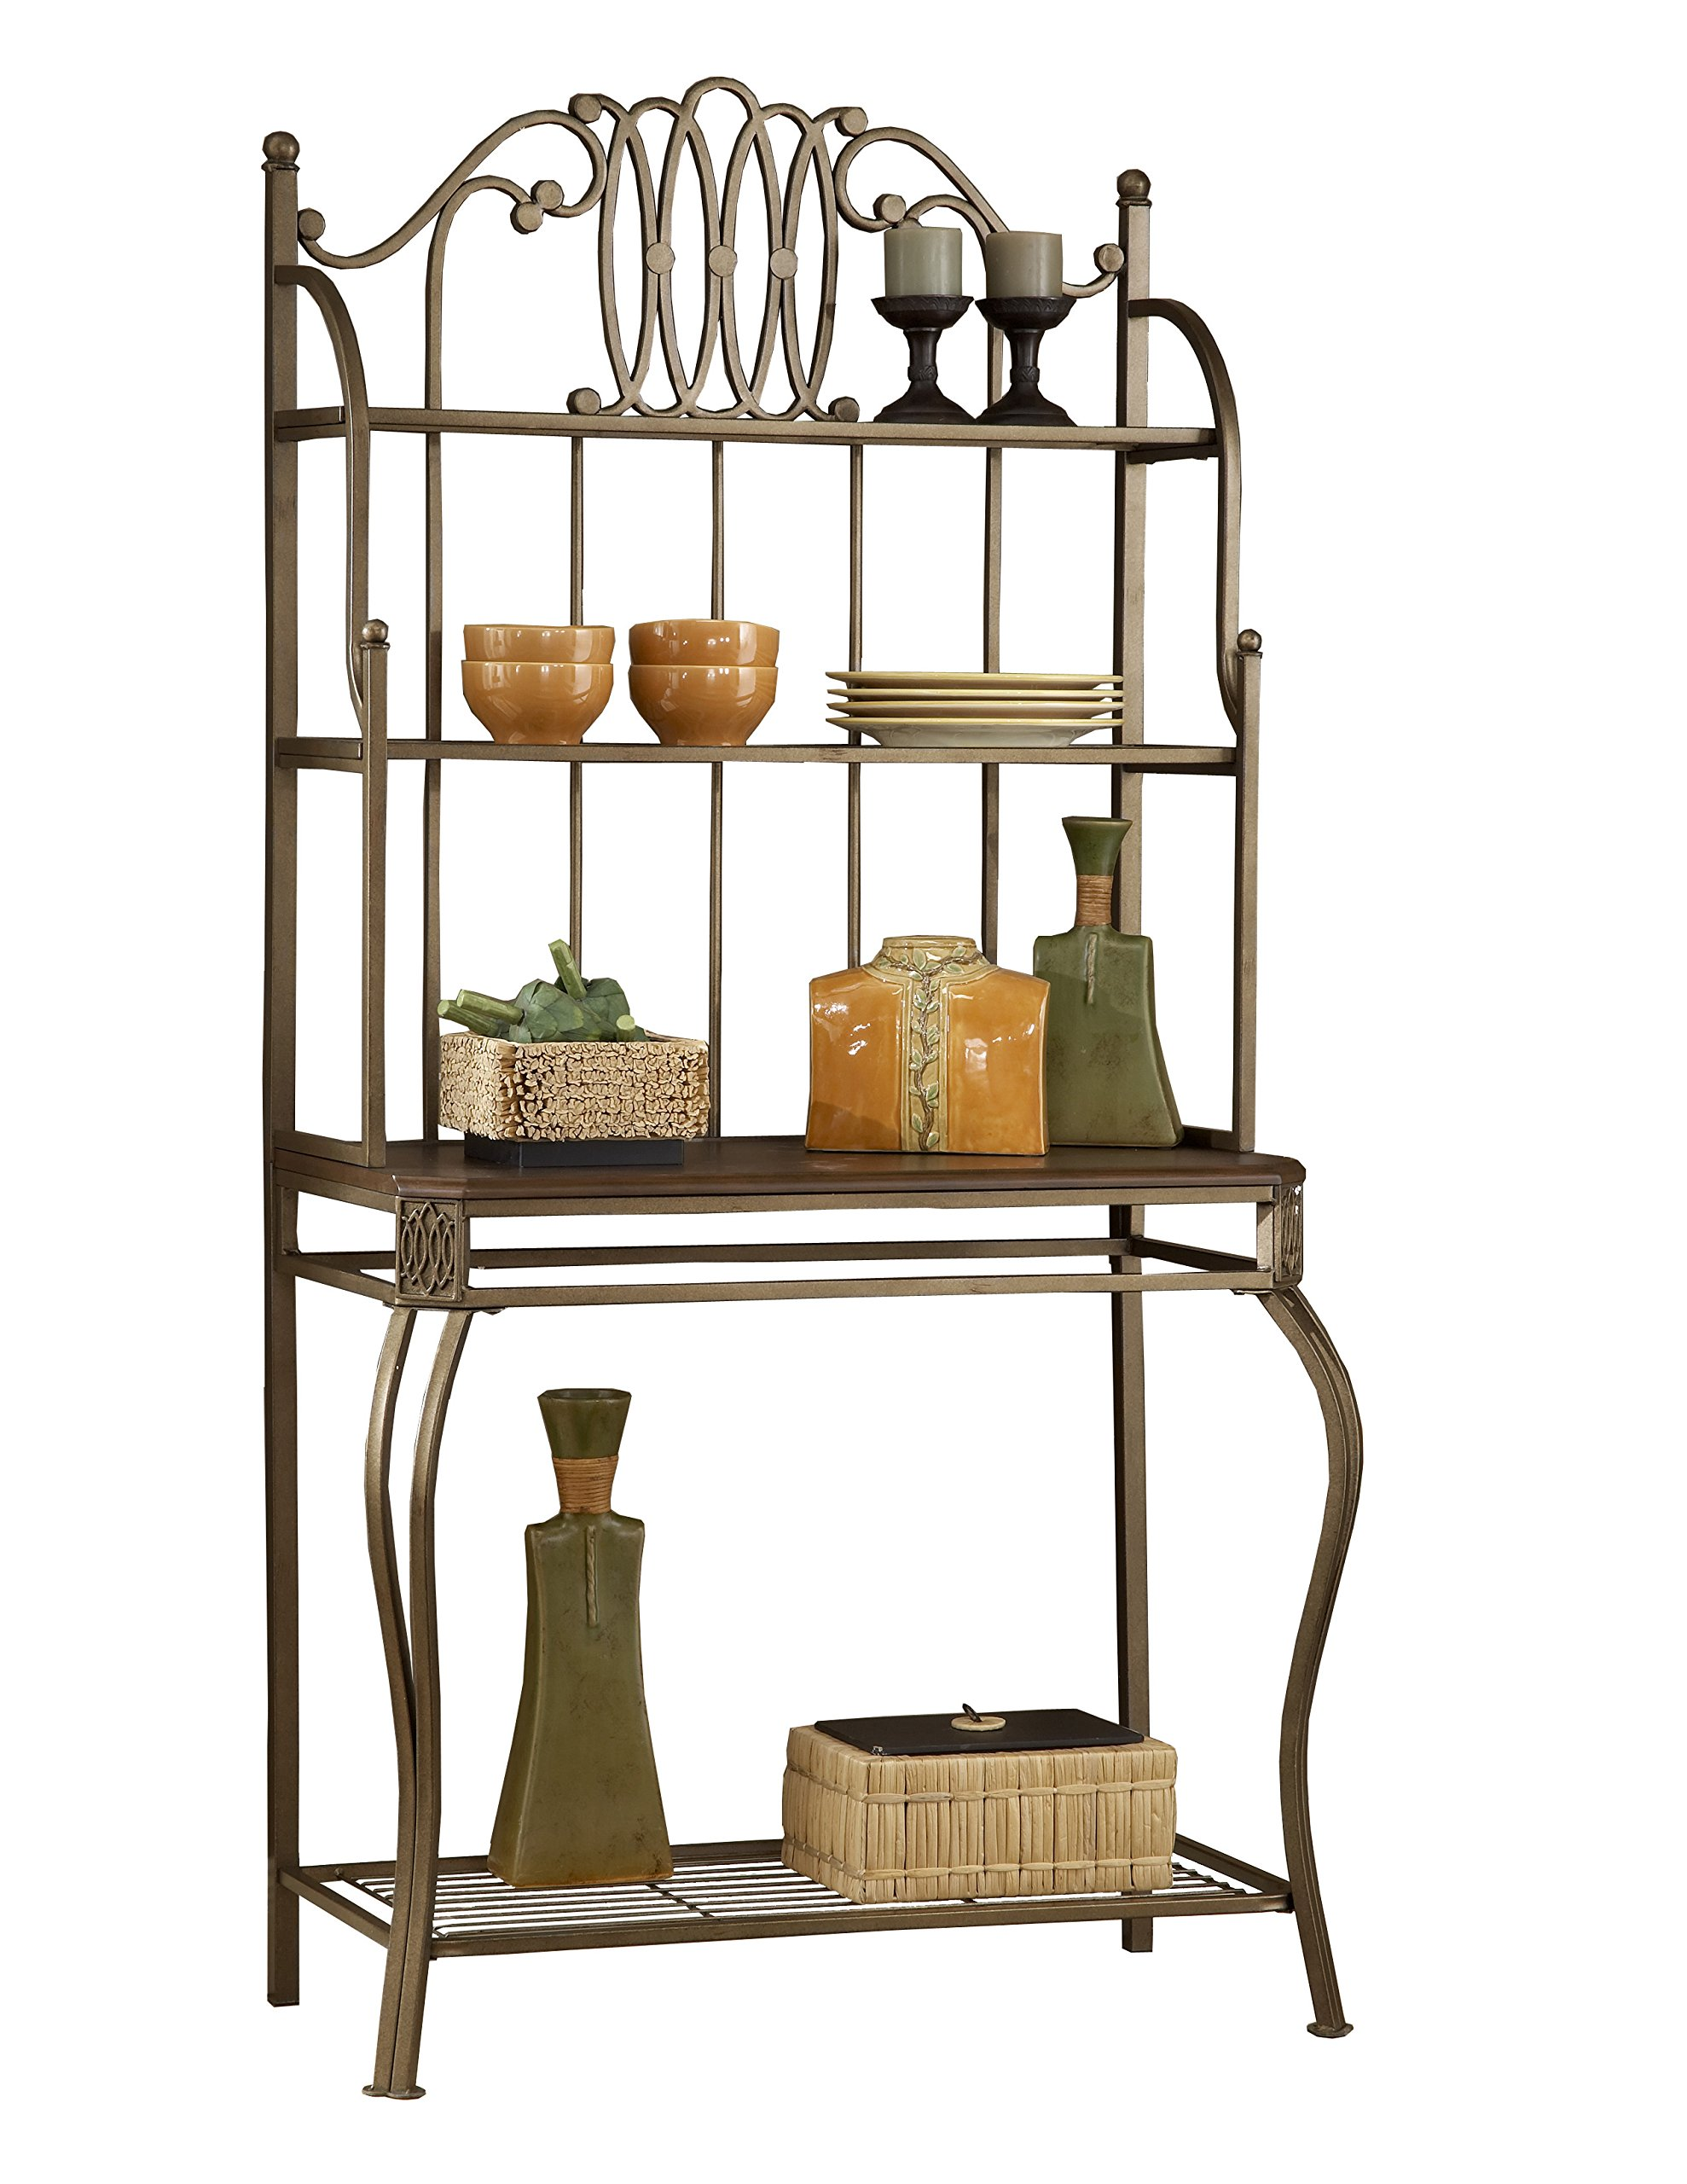 Hillsdale Furniture 41548H Montello Baker's Rack, Old Steel